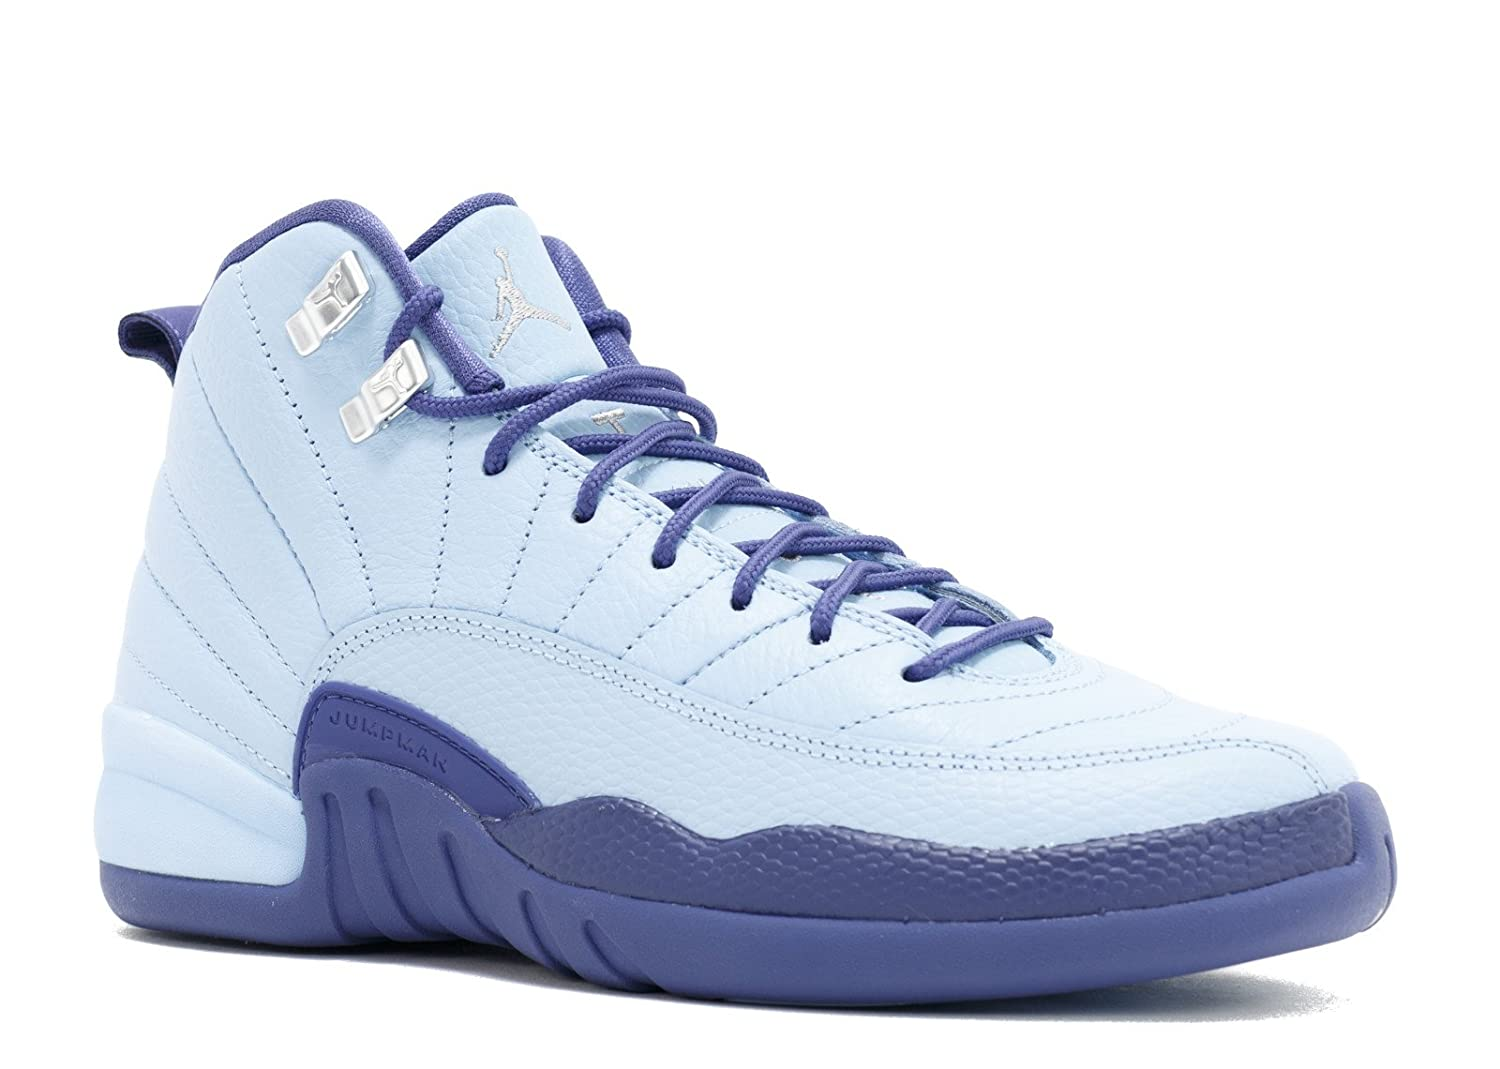 buy popular 5b674 eb429 Amazon.com   NIKE Air Jordan 12 Retro GG (GS)  Hornets  - 510815-418 - Size  6   Basketball